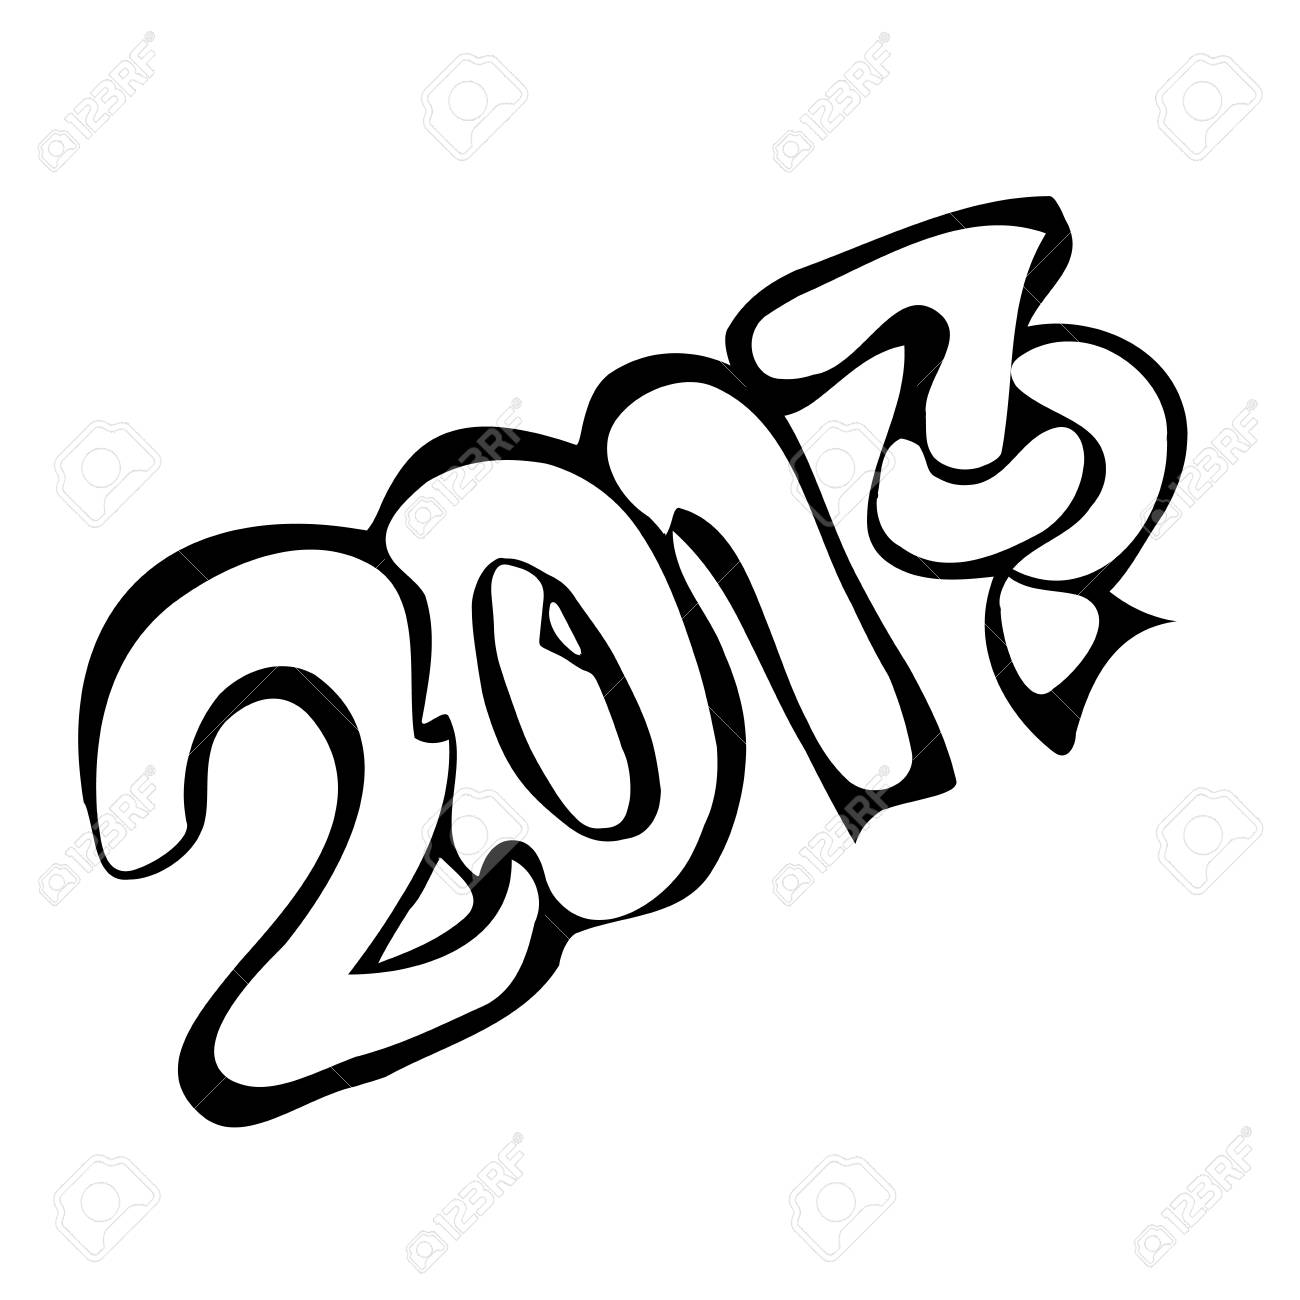 Font host new year 2017 vector illustration in style of pencil